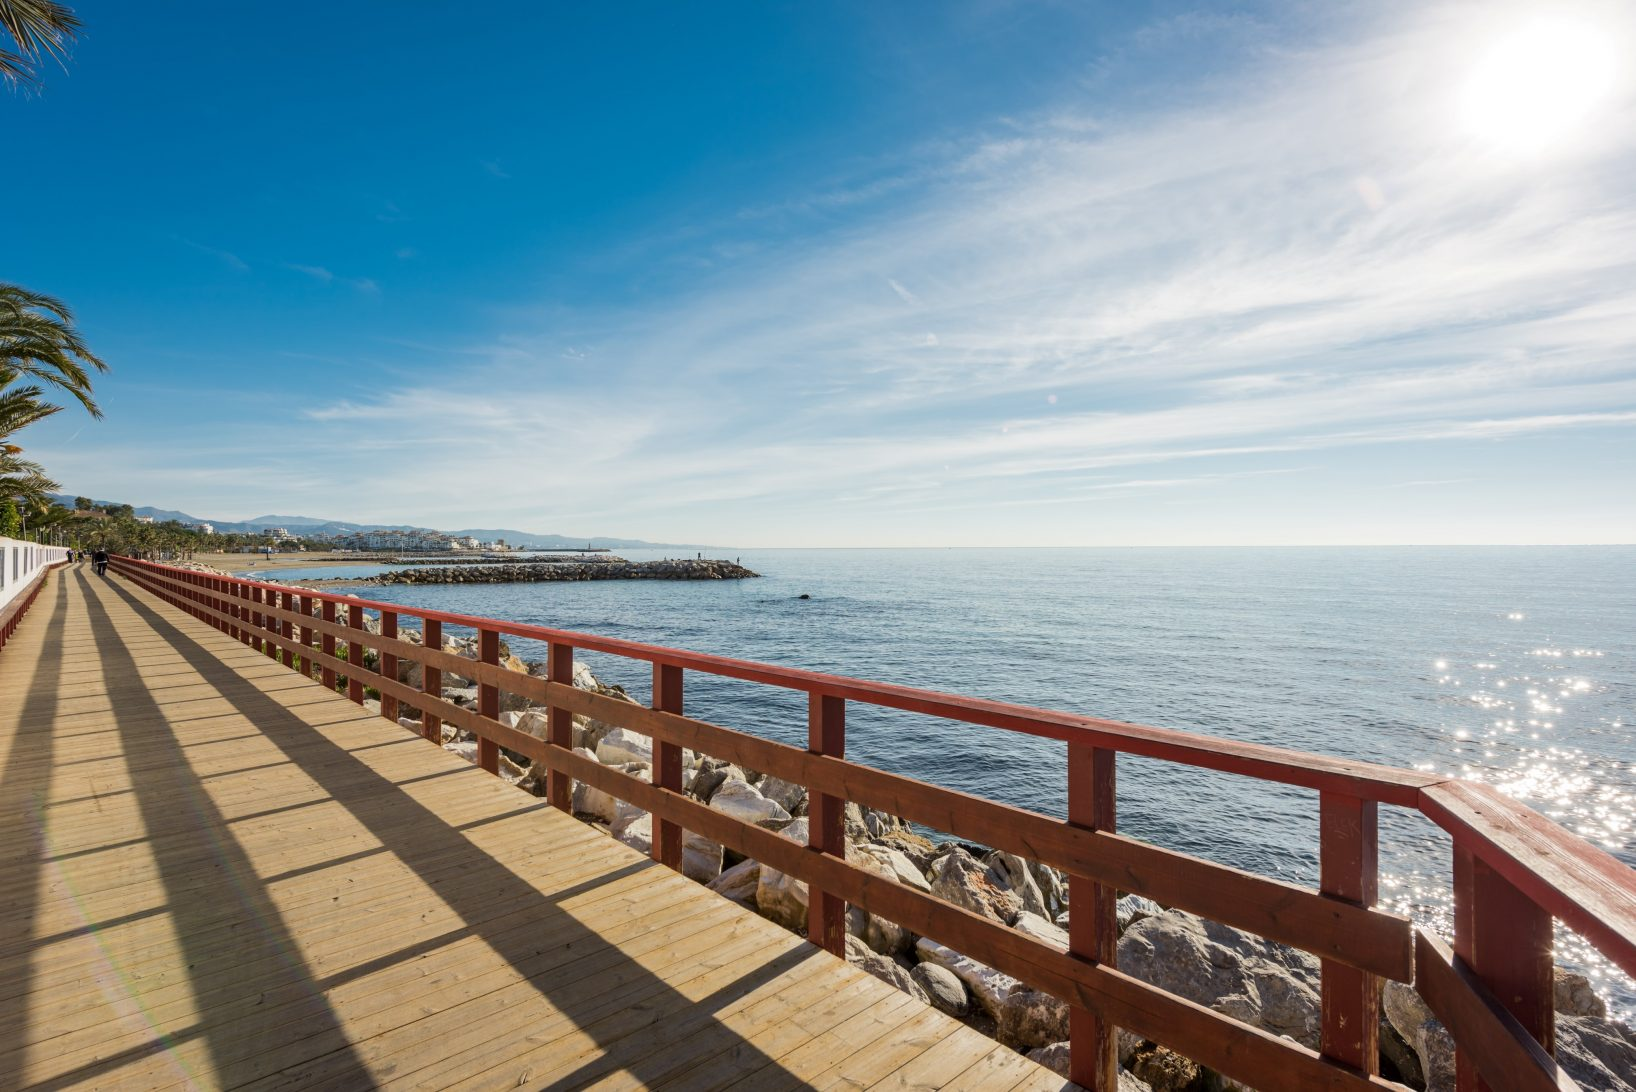 Malaga coastal path continues to expand